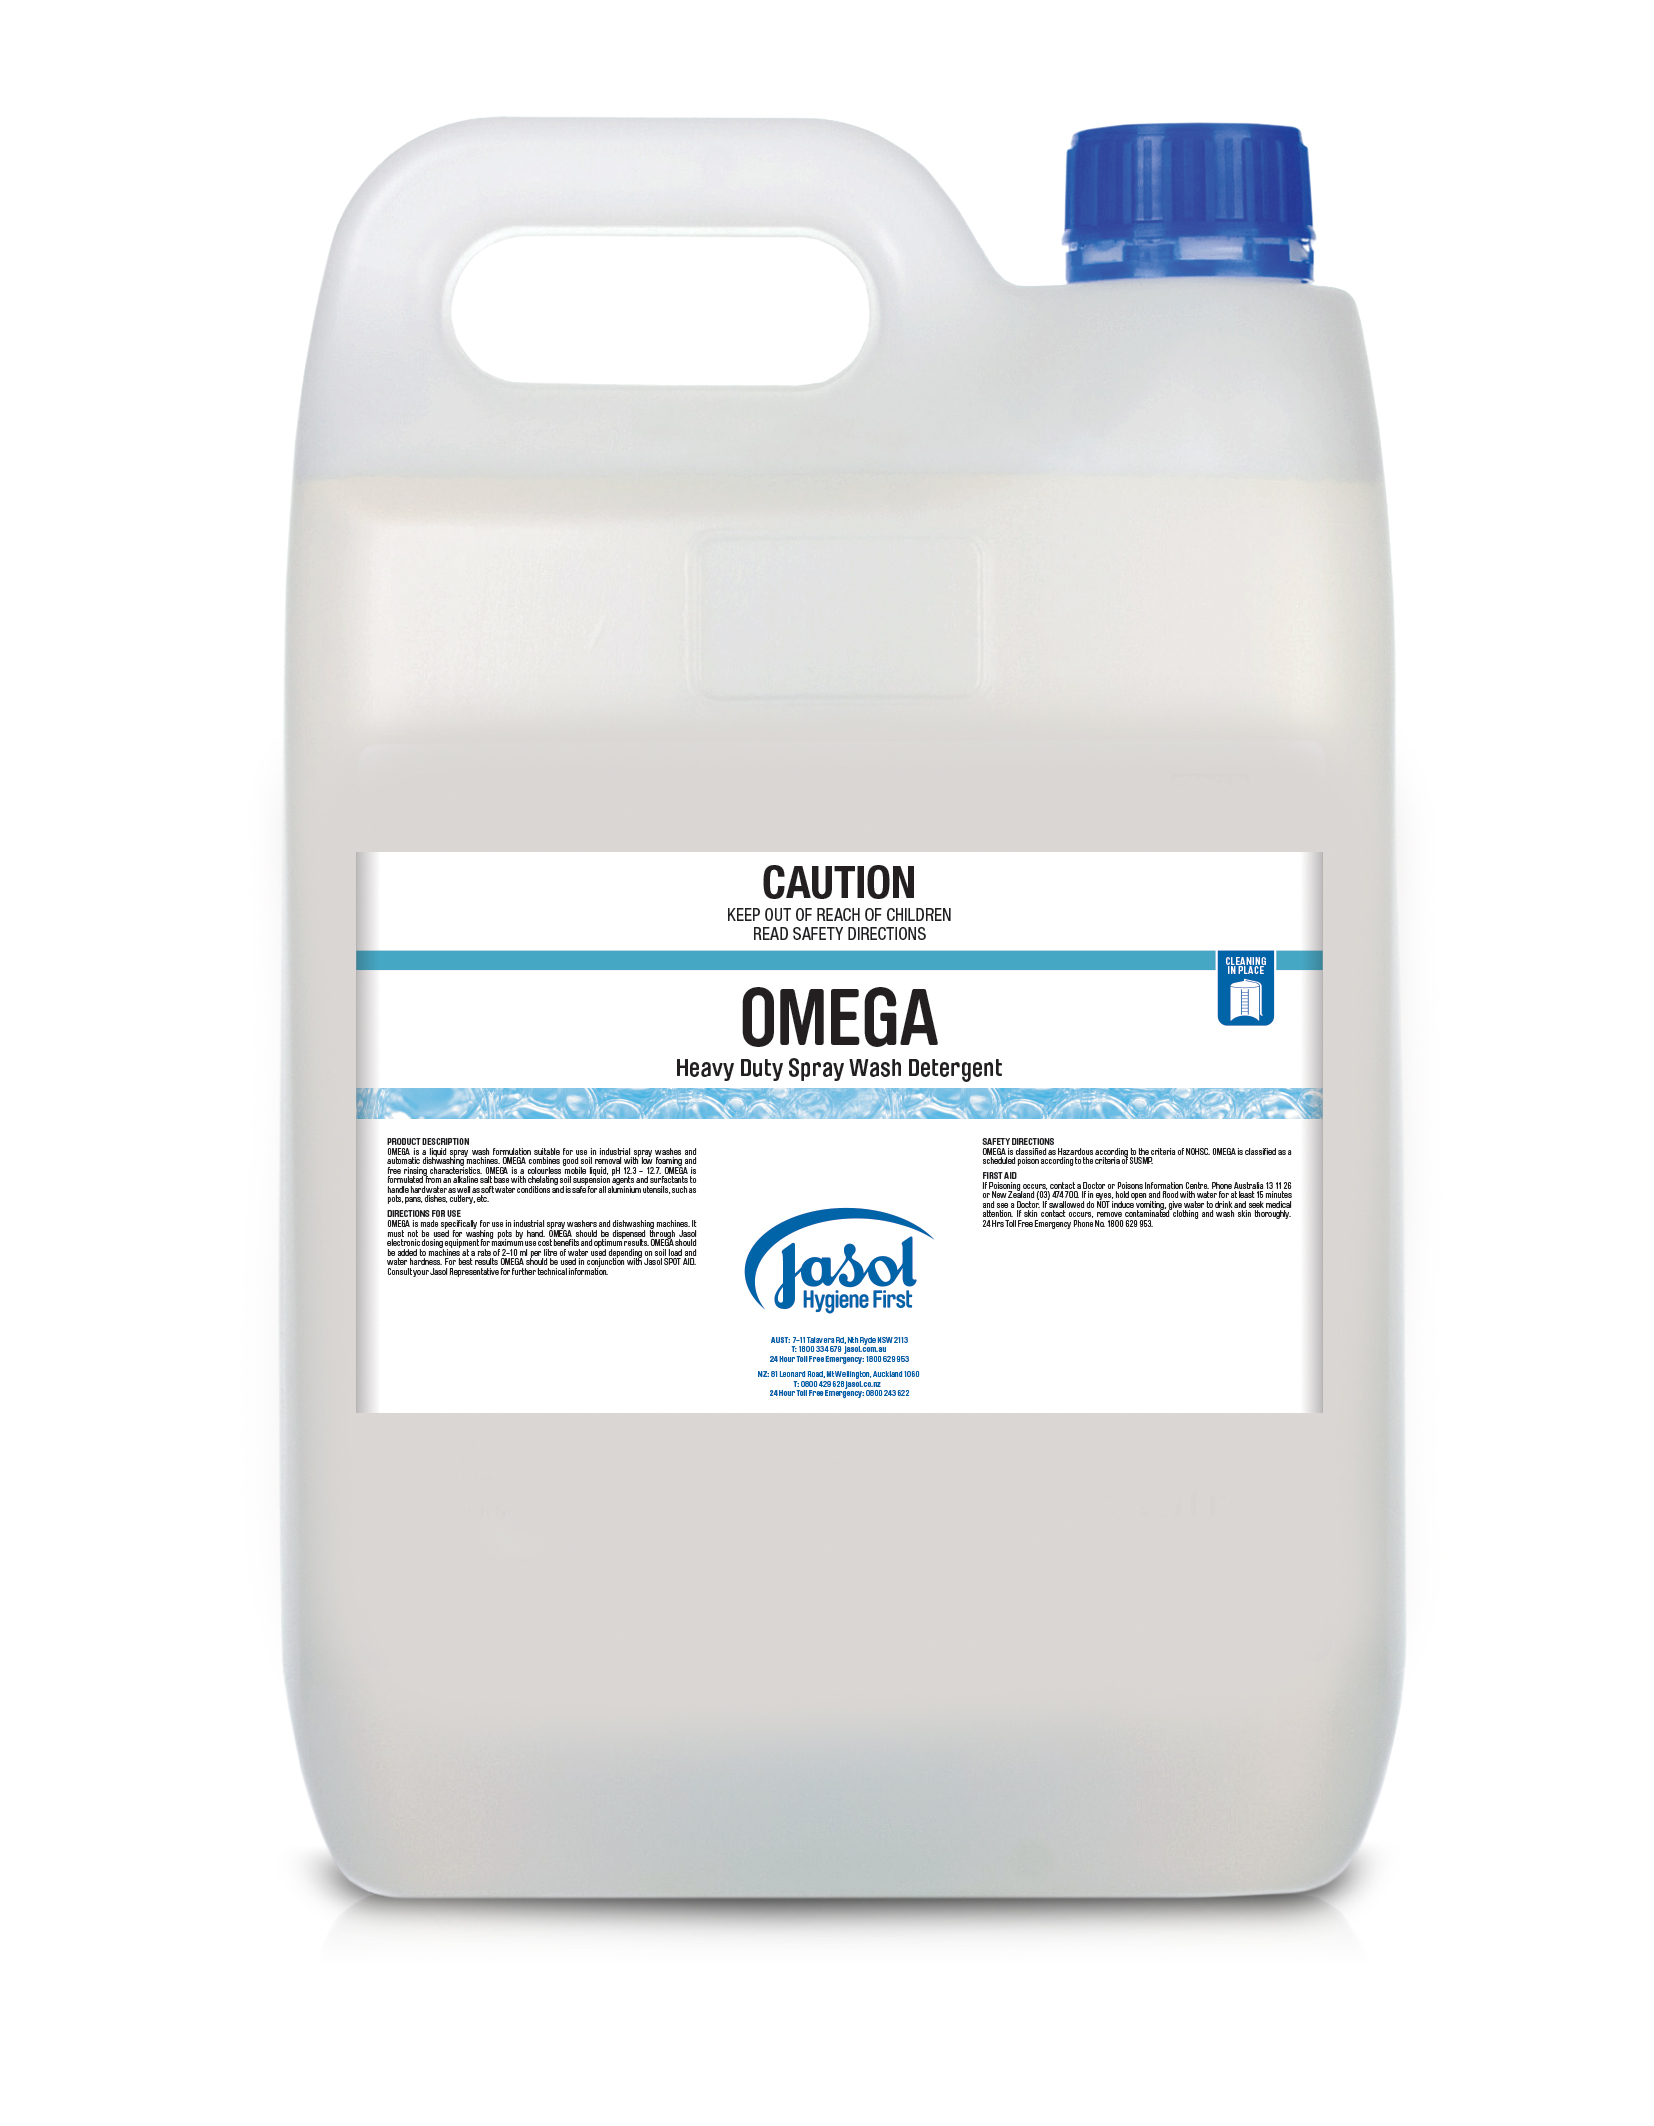 Omega Spray Wash Detergent